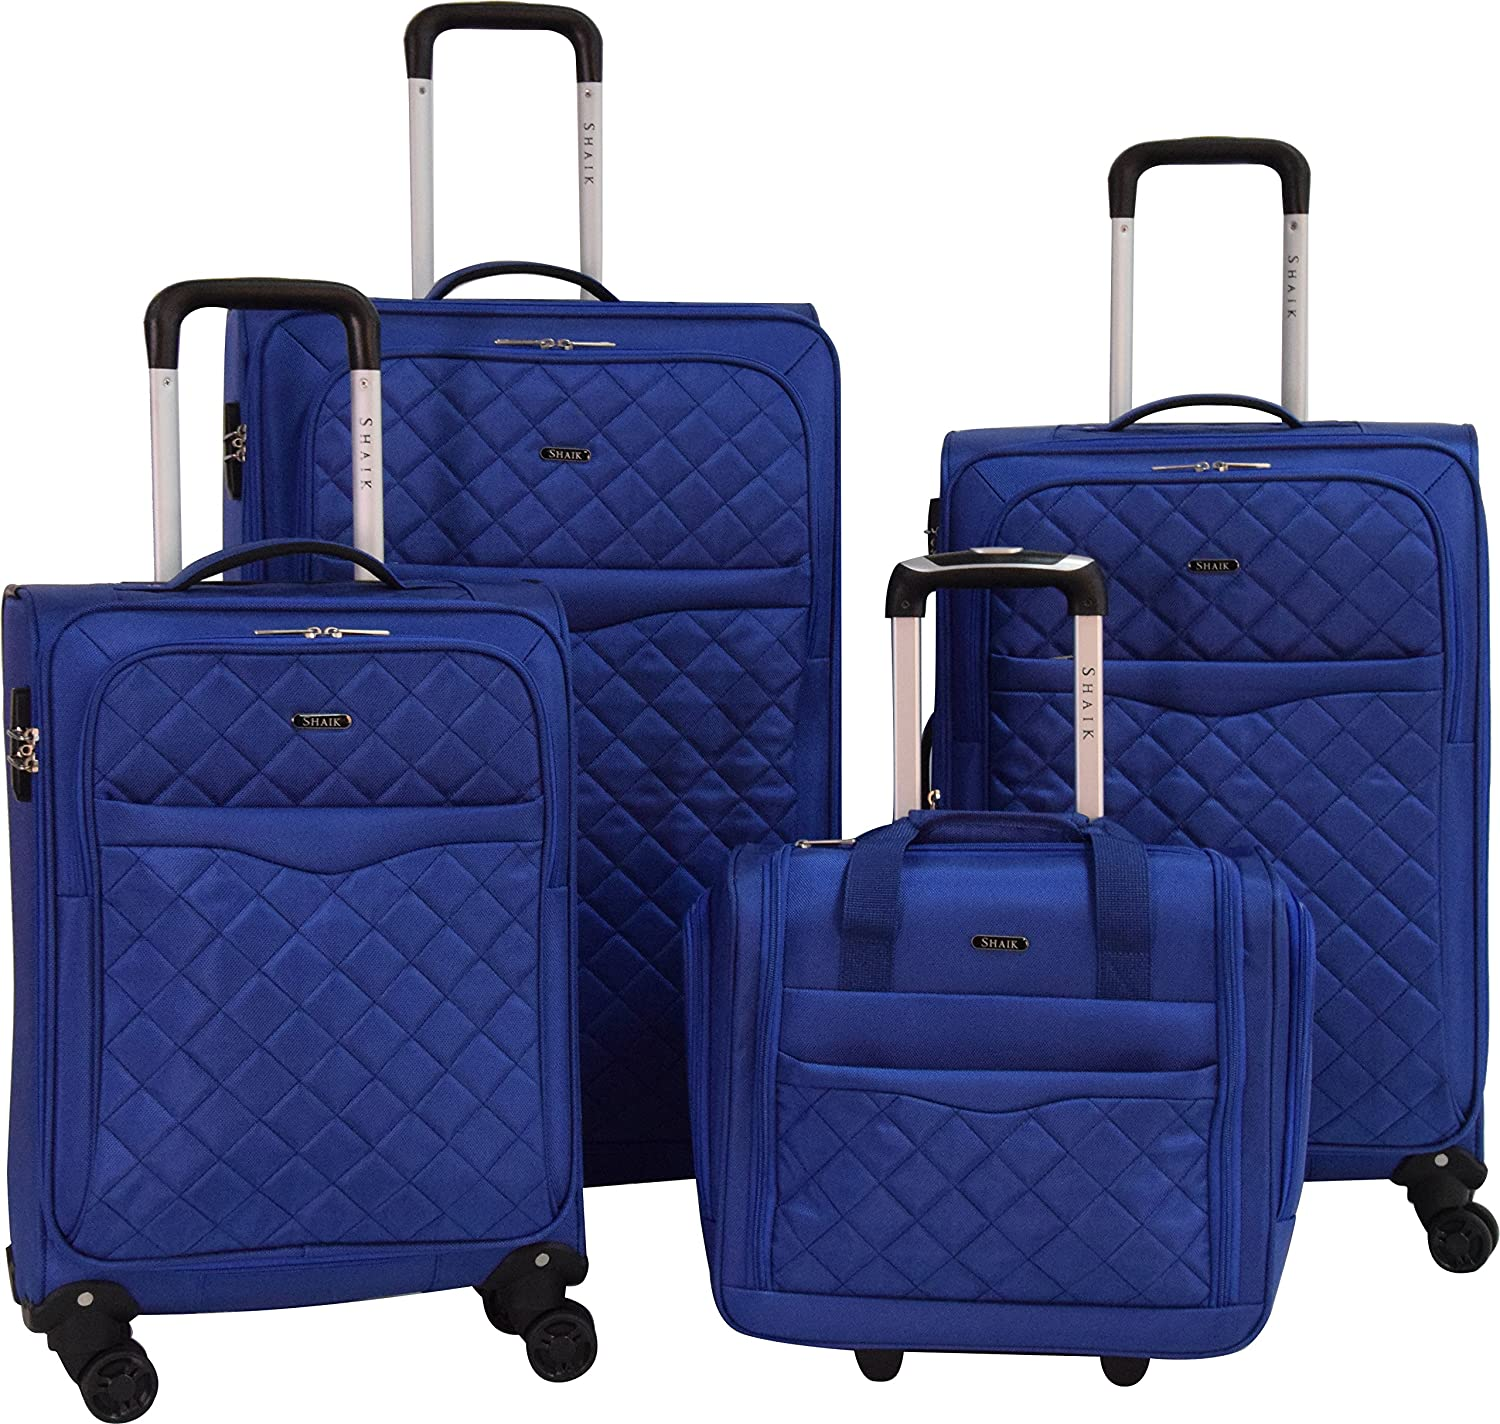 3 Available Colors Set, Blue 4-Piece Set Heavy-Duty TSA Security Locks SHAIK/® Series Manchester Rolling Travel Luggage Soft Side Suitcase and Carry On with Wheels Trendy Lightweight